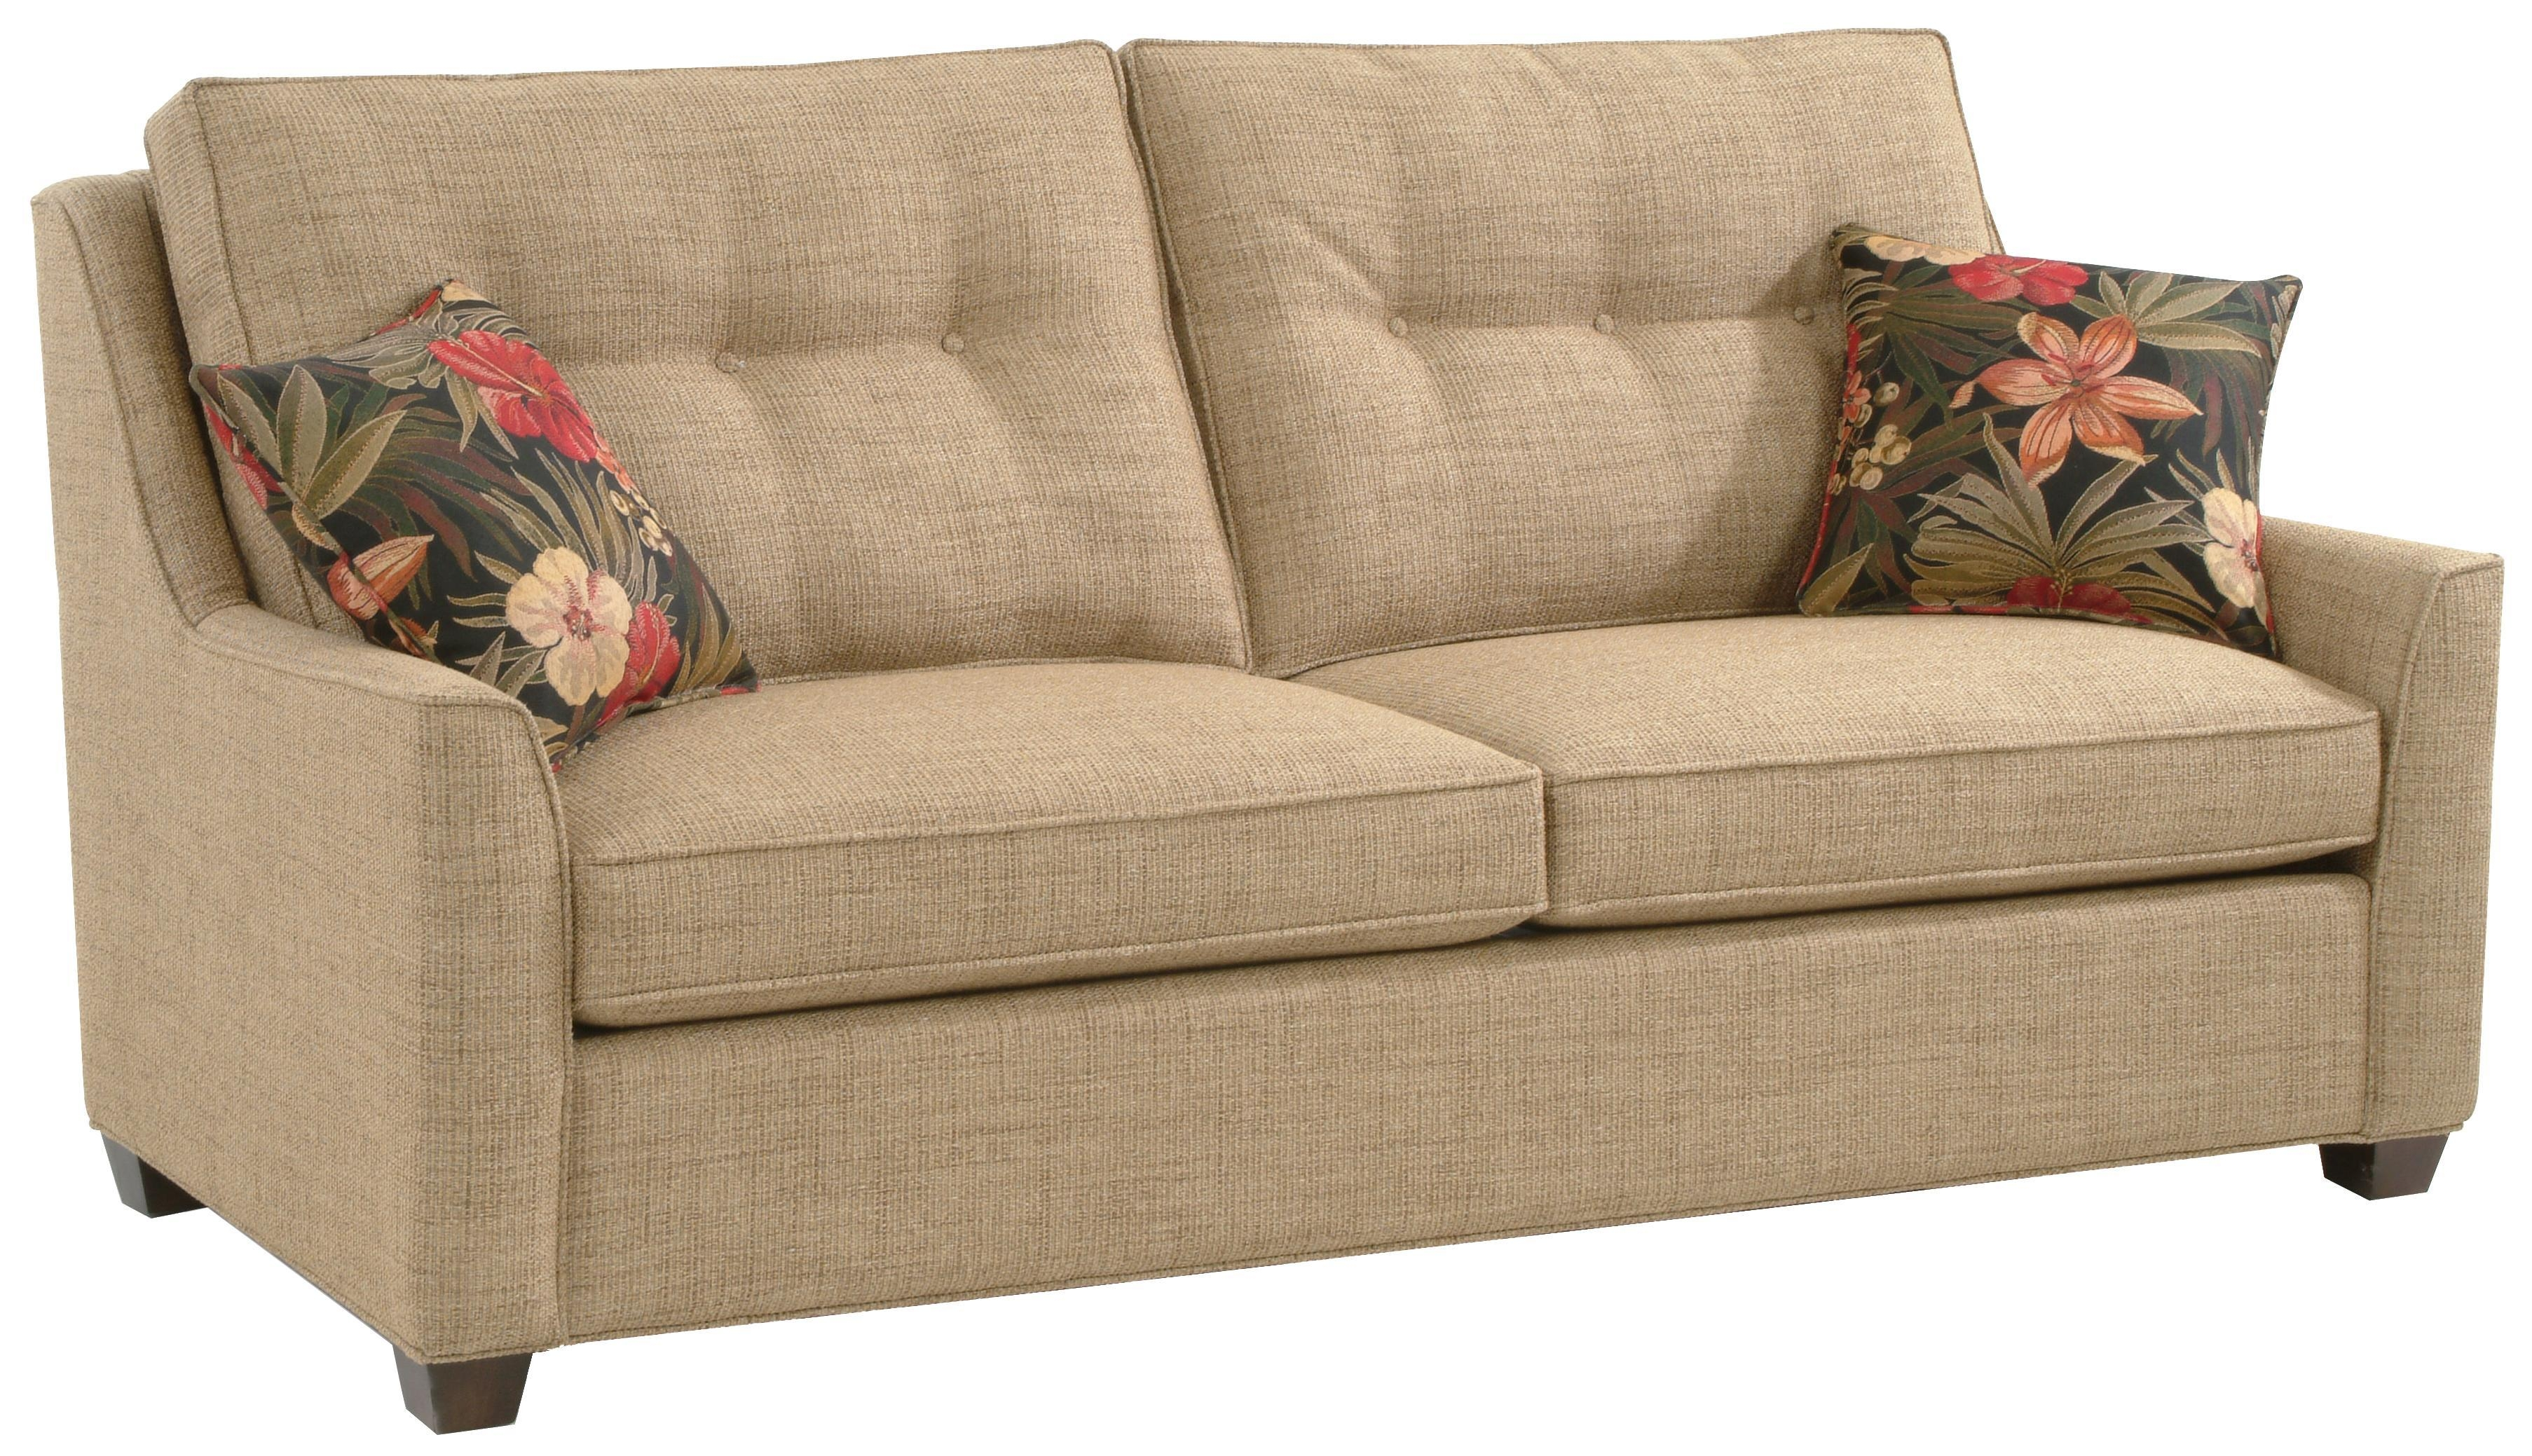 Braxton Culler Sofas & Accent Sofas Store – Dealer Locator Within Braxton Culler Sofas (Image 15 of 20)